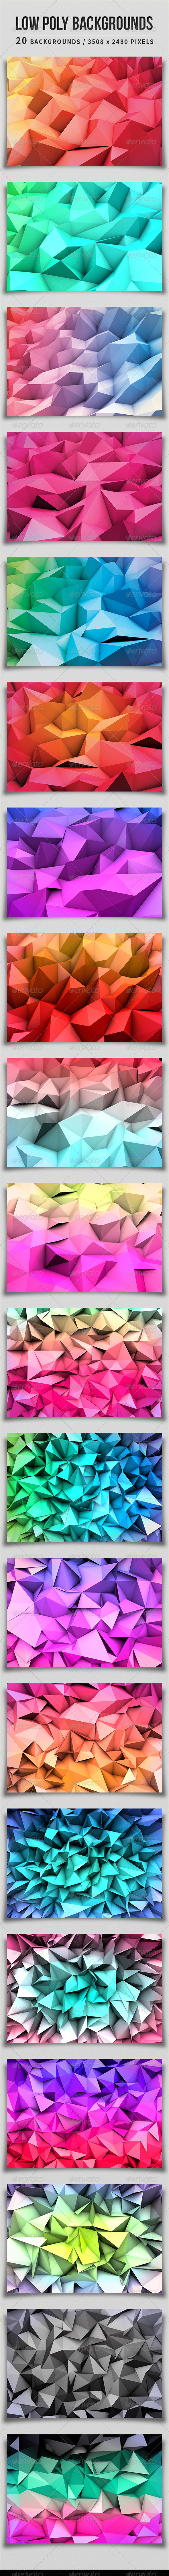 GraphicRiver Low Poly Backgrounds 5048031